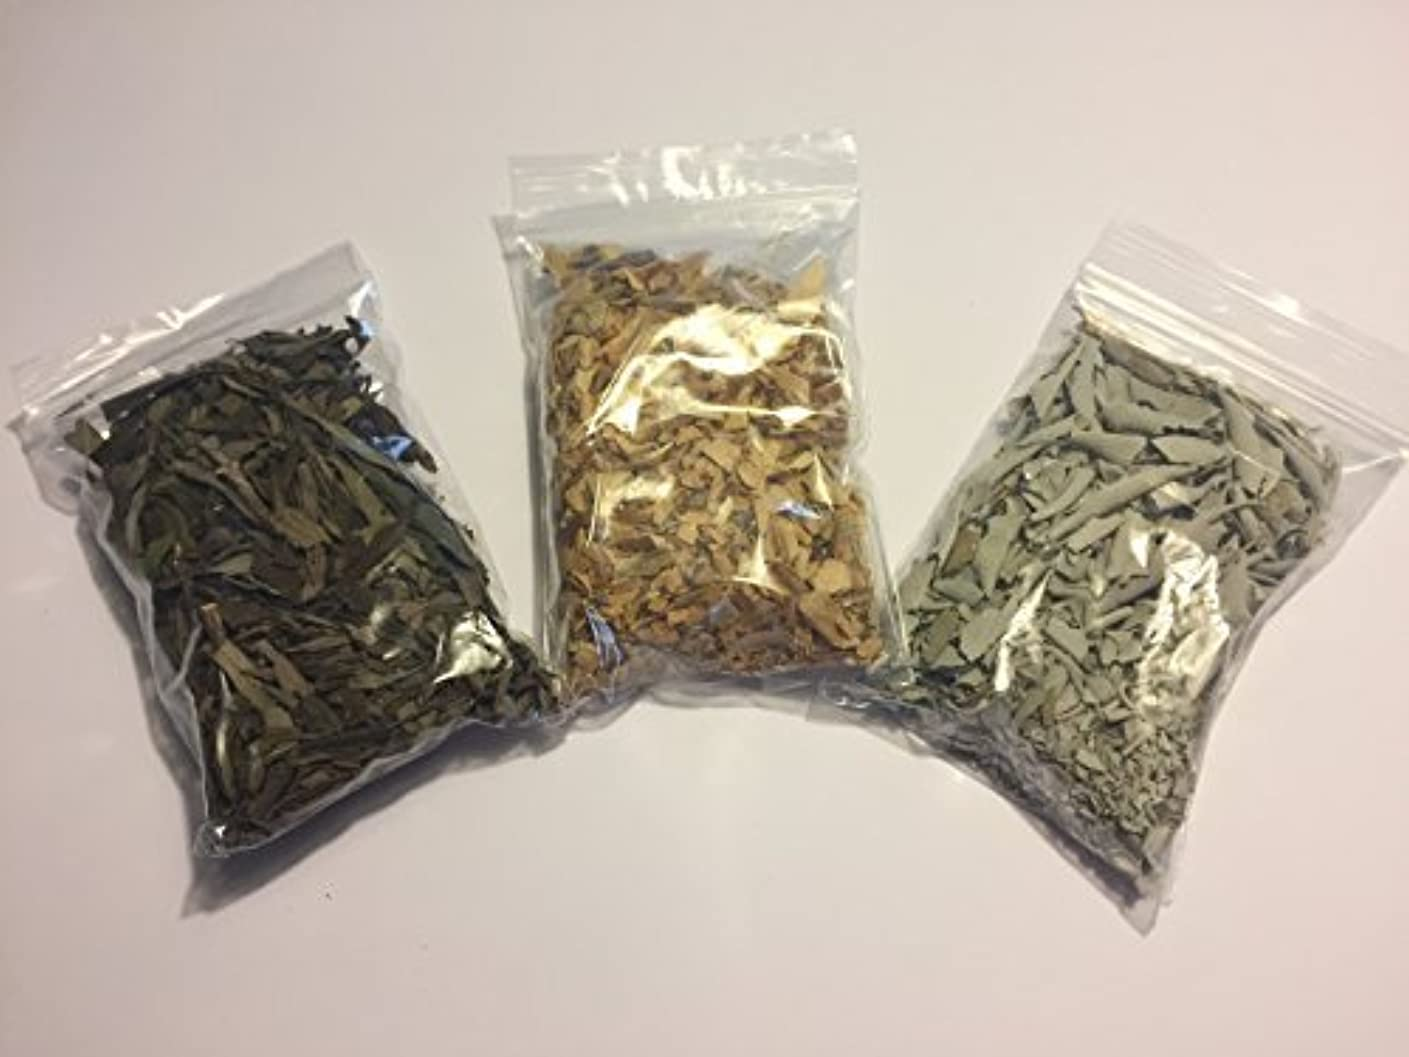 取り戻す追跡雪だるまを作るLoose Leaf Variety Smudge Kit includes White Sage Lavender and Palo Santo Flakes [並行輸入品]